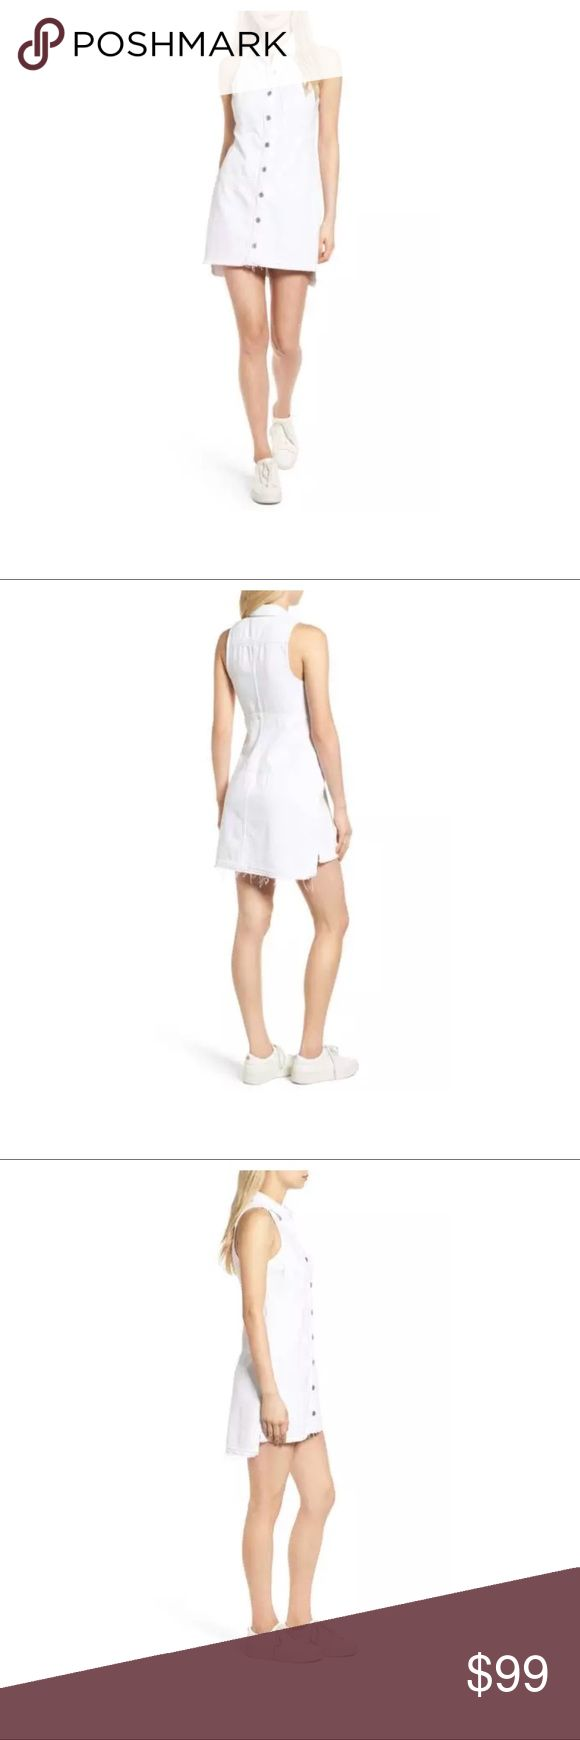 """$249 NWT 7 For All Mankind Released Hem Denim Dres New with tags. Retails for $249 + Tax  White Button front Denim dress Sleeveless Released hem Frayed trim and hem  Size M  Measures approximately: front length 35"""", back length 37"""" bust across 18.75""""  High end department store shelf pull- May have had customer contact  **Has some dirt/marks on the bottom of the hem from being handled in stores. Has been spot treated, marks faded but remain. Item has not been bleached- if desired. Refer to…"""